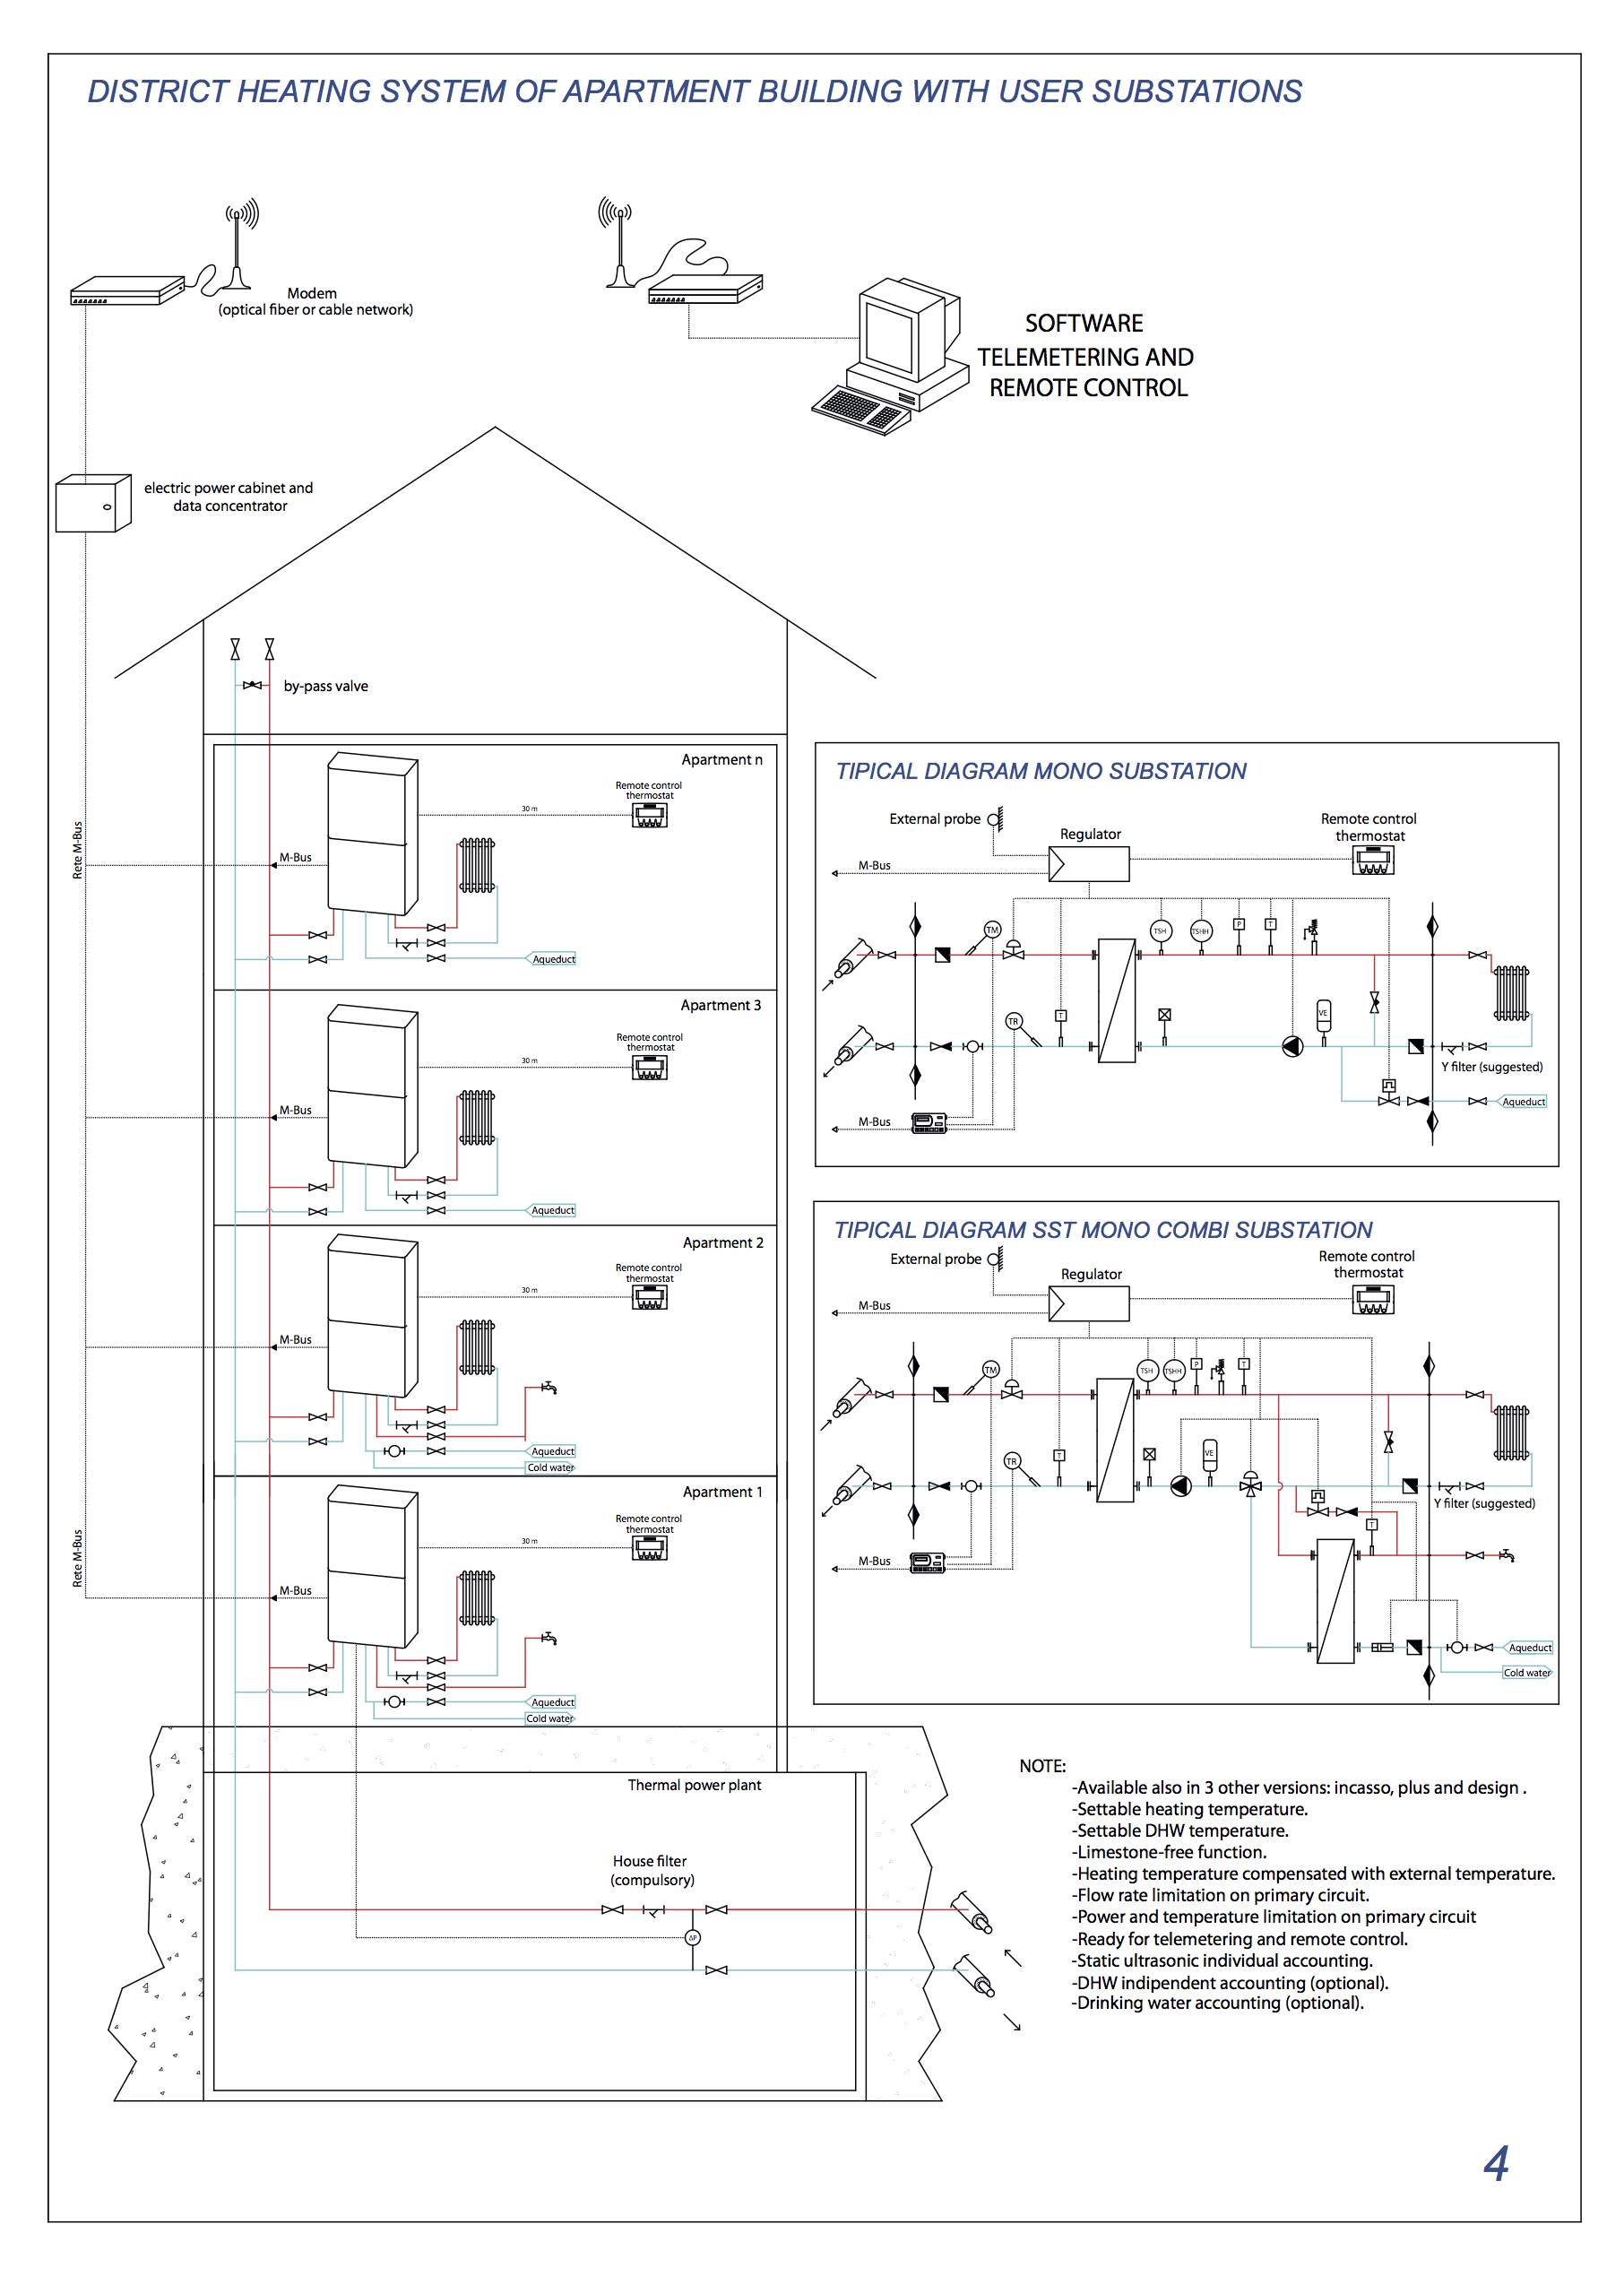 DISTRICT HEATING SYSTEM OF APARTMENT BUILDING WITH USER SUBSTATIONS